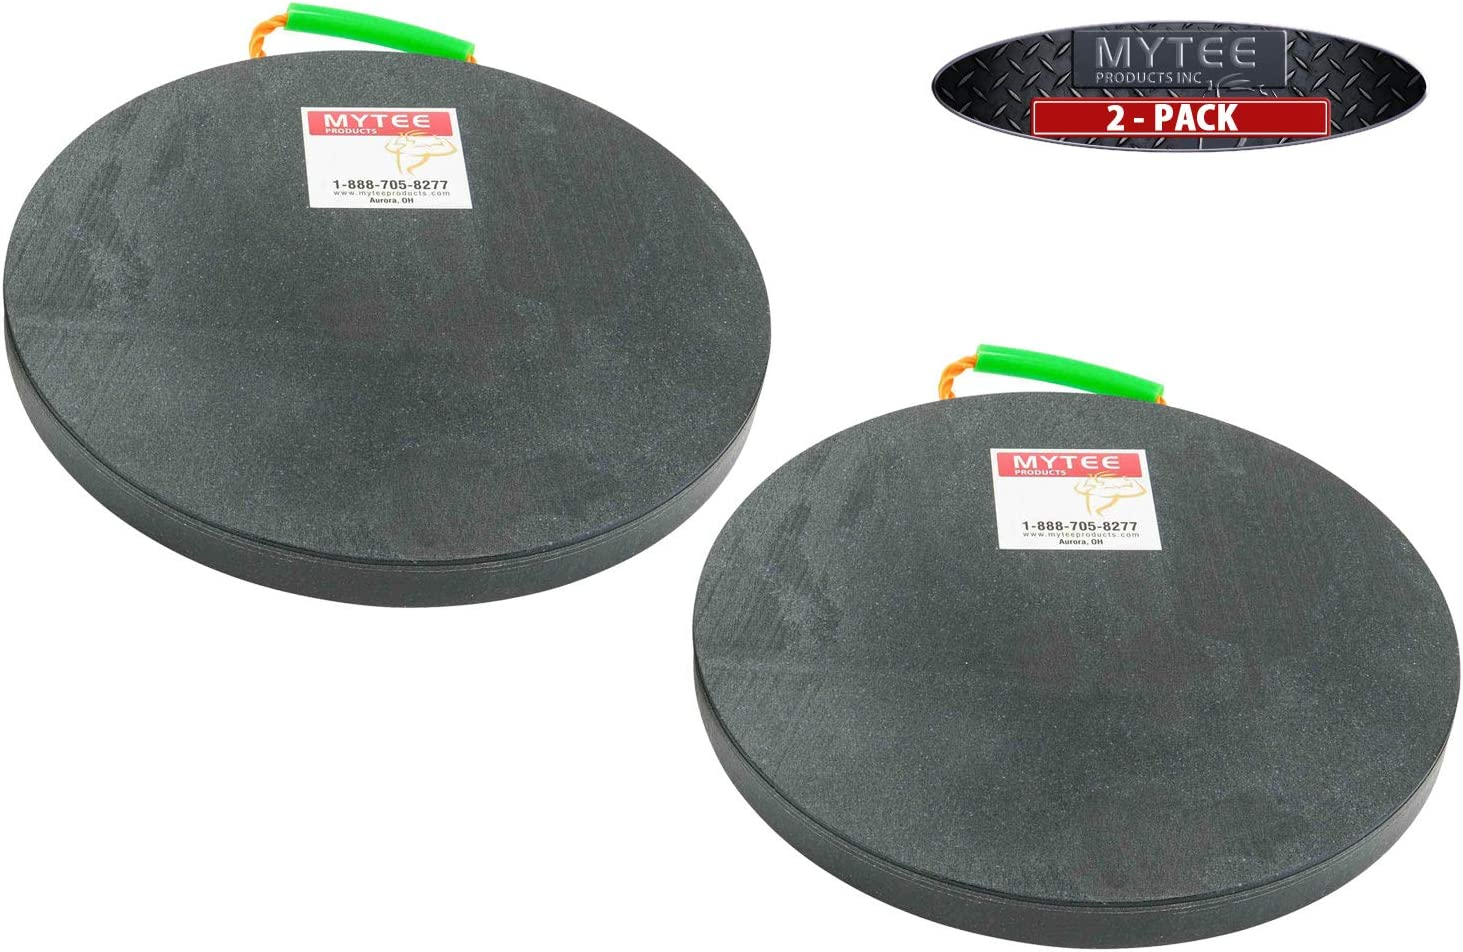 Mytee Products Round Outrigger Pad 1.5